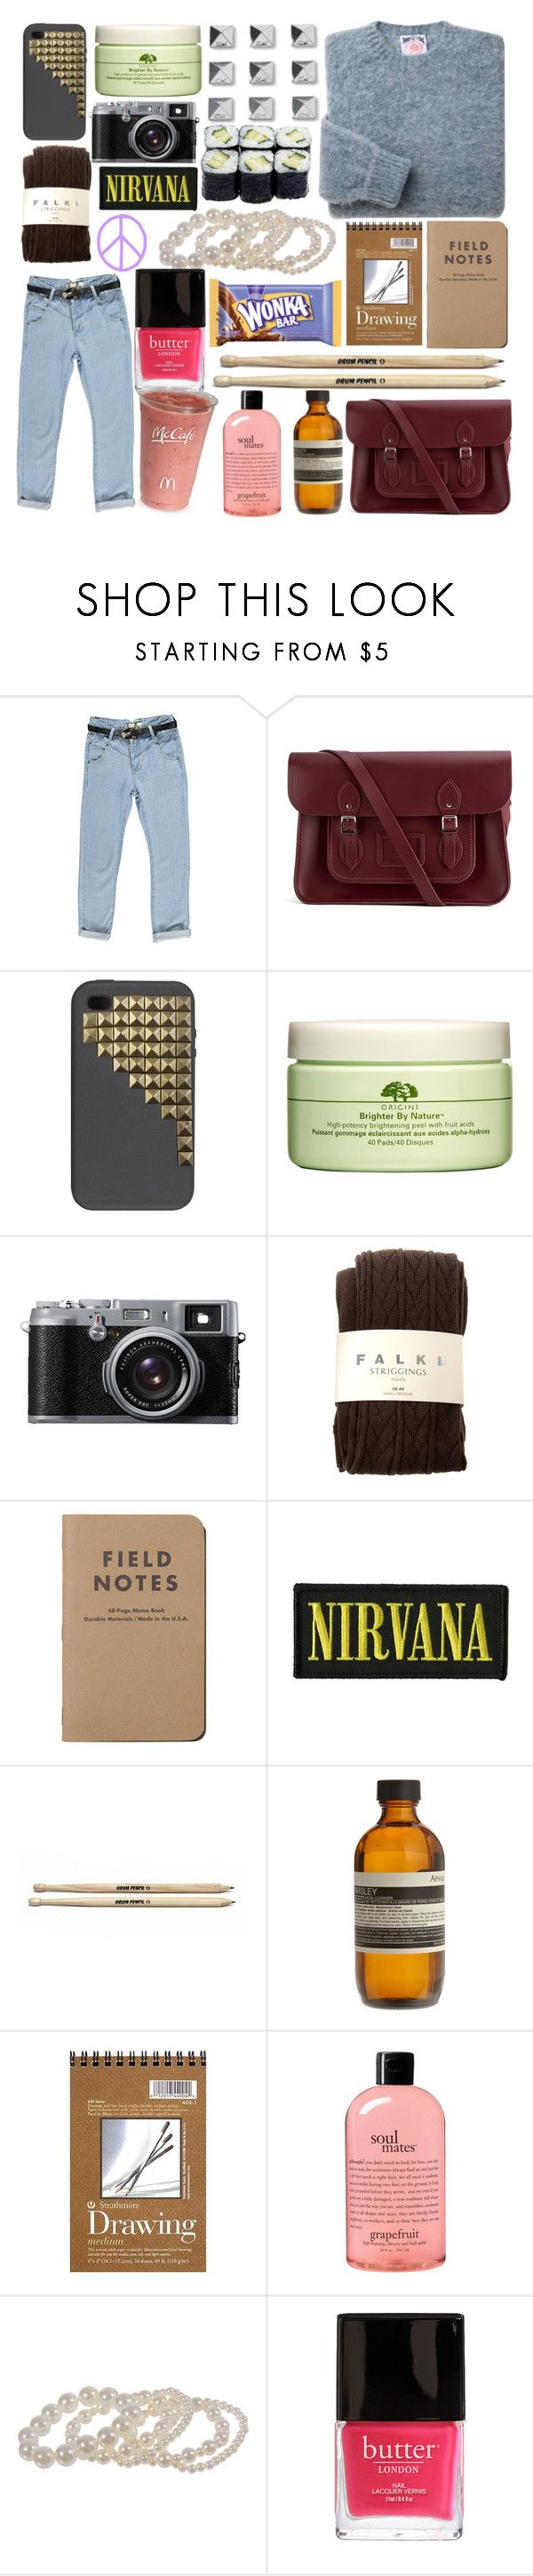 """""""smells like teen spirit"""" by paper-towns ❤ liked on Polyvore featuring Boohoo, The Cambridge Satchel Company, Fashion Lab, Origins, Dakine, John Lewis, Falke, FRUIT, Aesop and philosophy"""